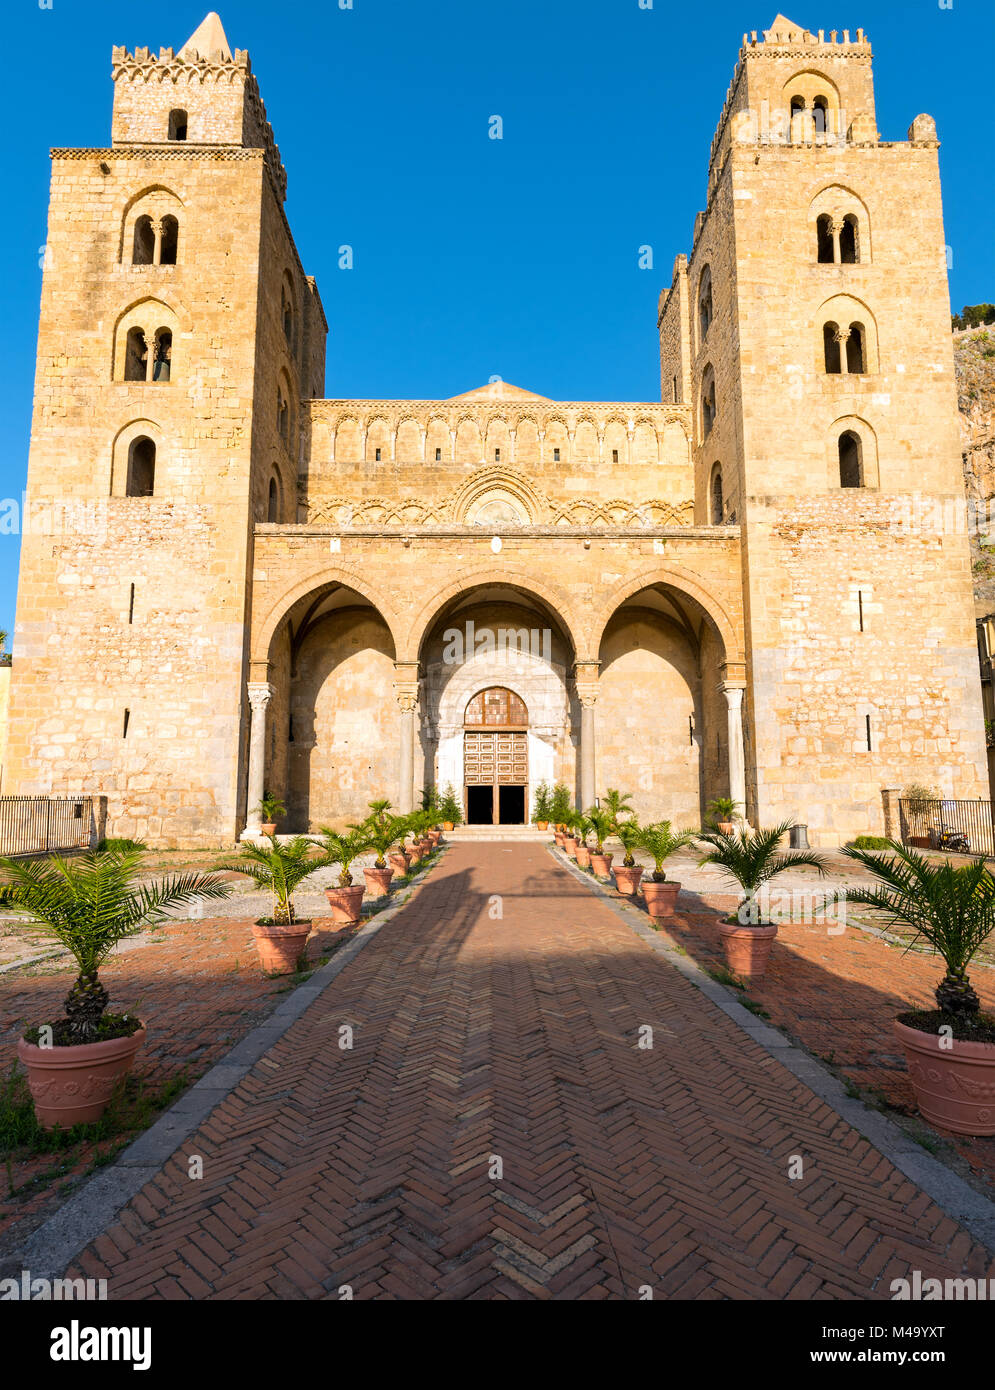 The imposing norman cathedral of Cefalu in Sicily - Stock Image